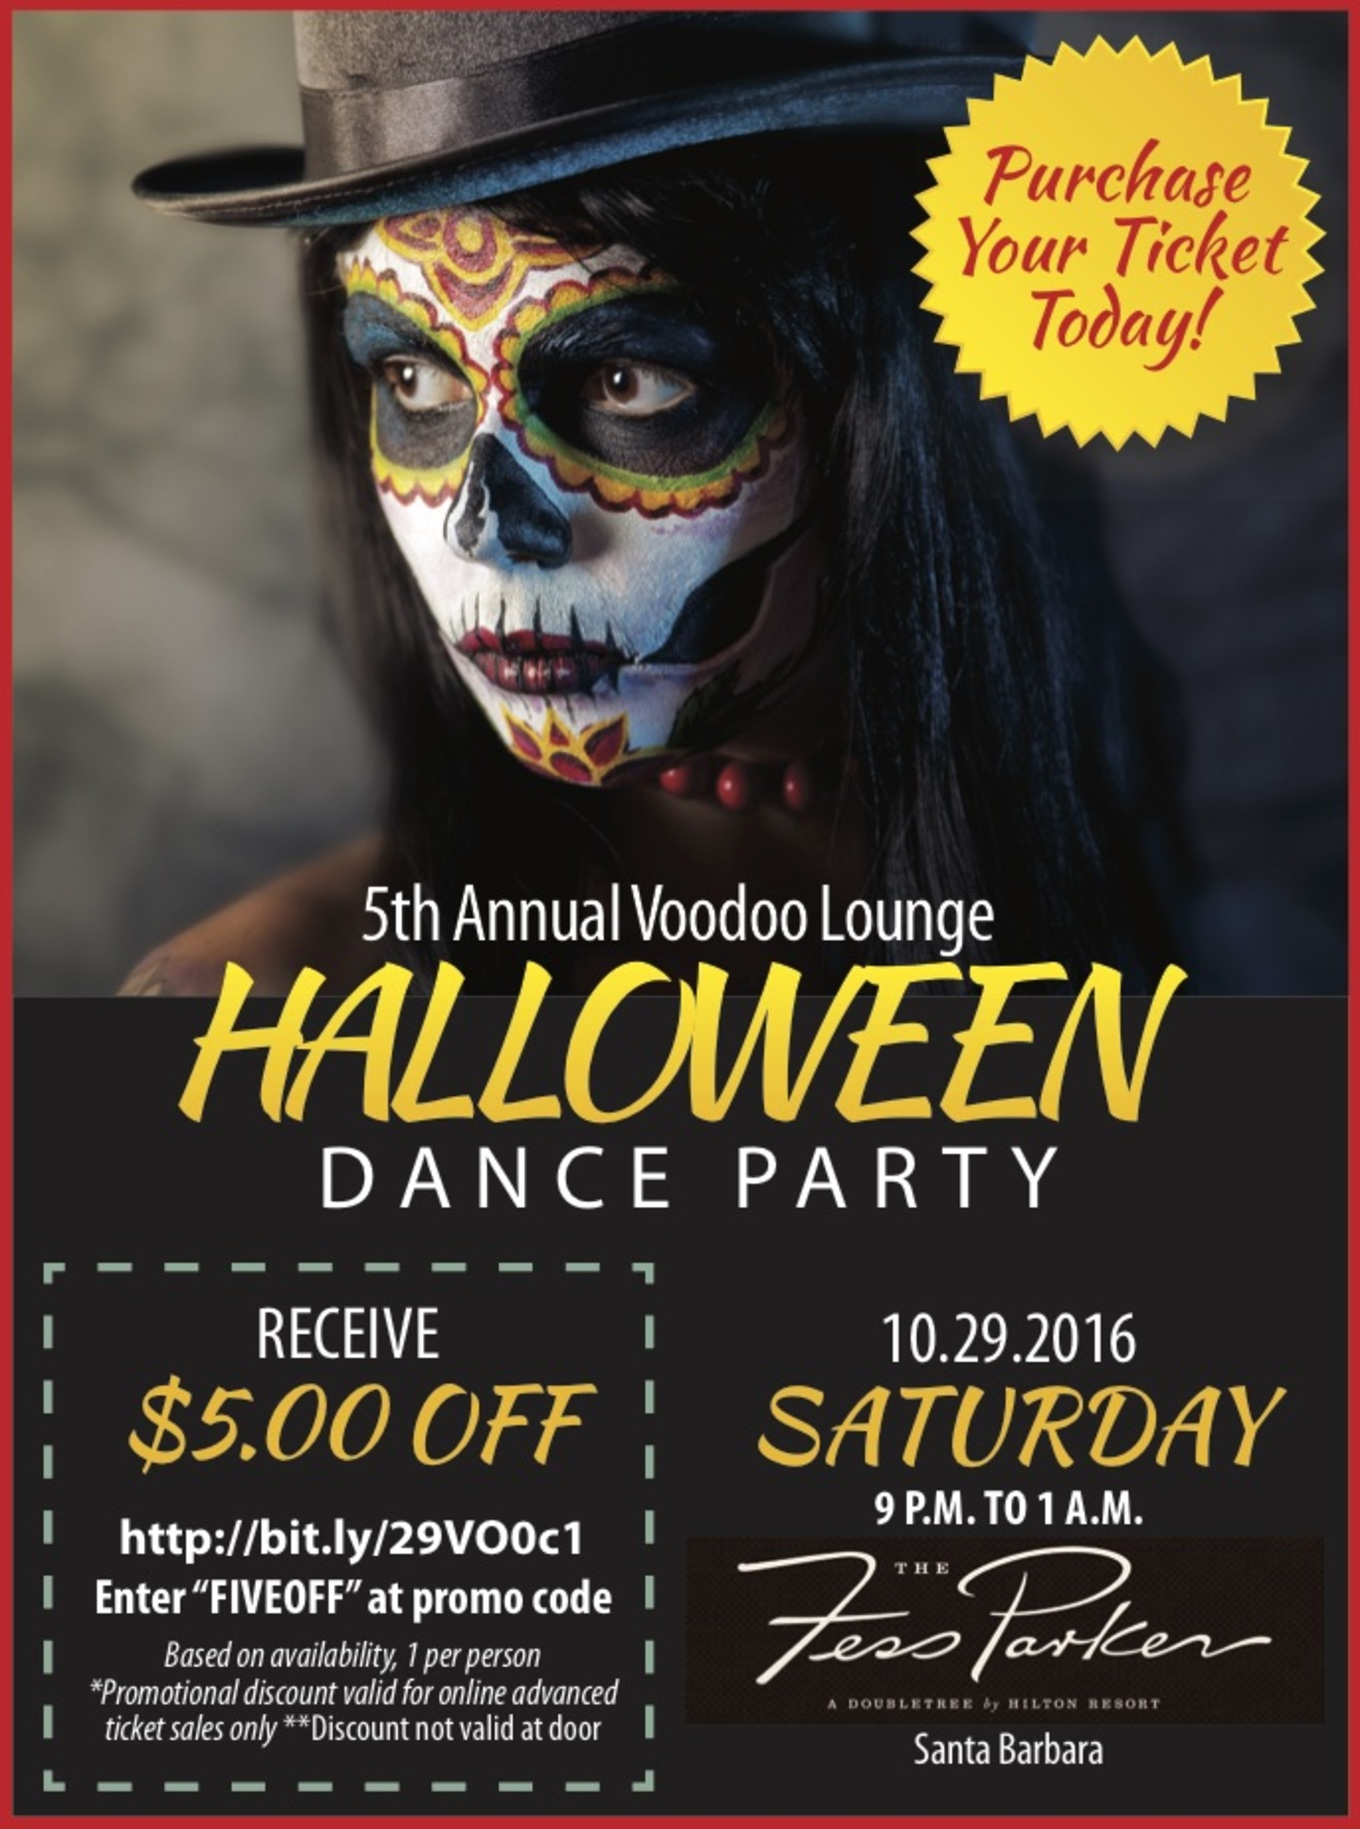 voodoo lounge 5th annual halloween dance party - fess parker